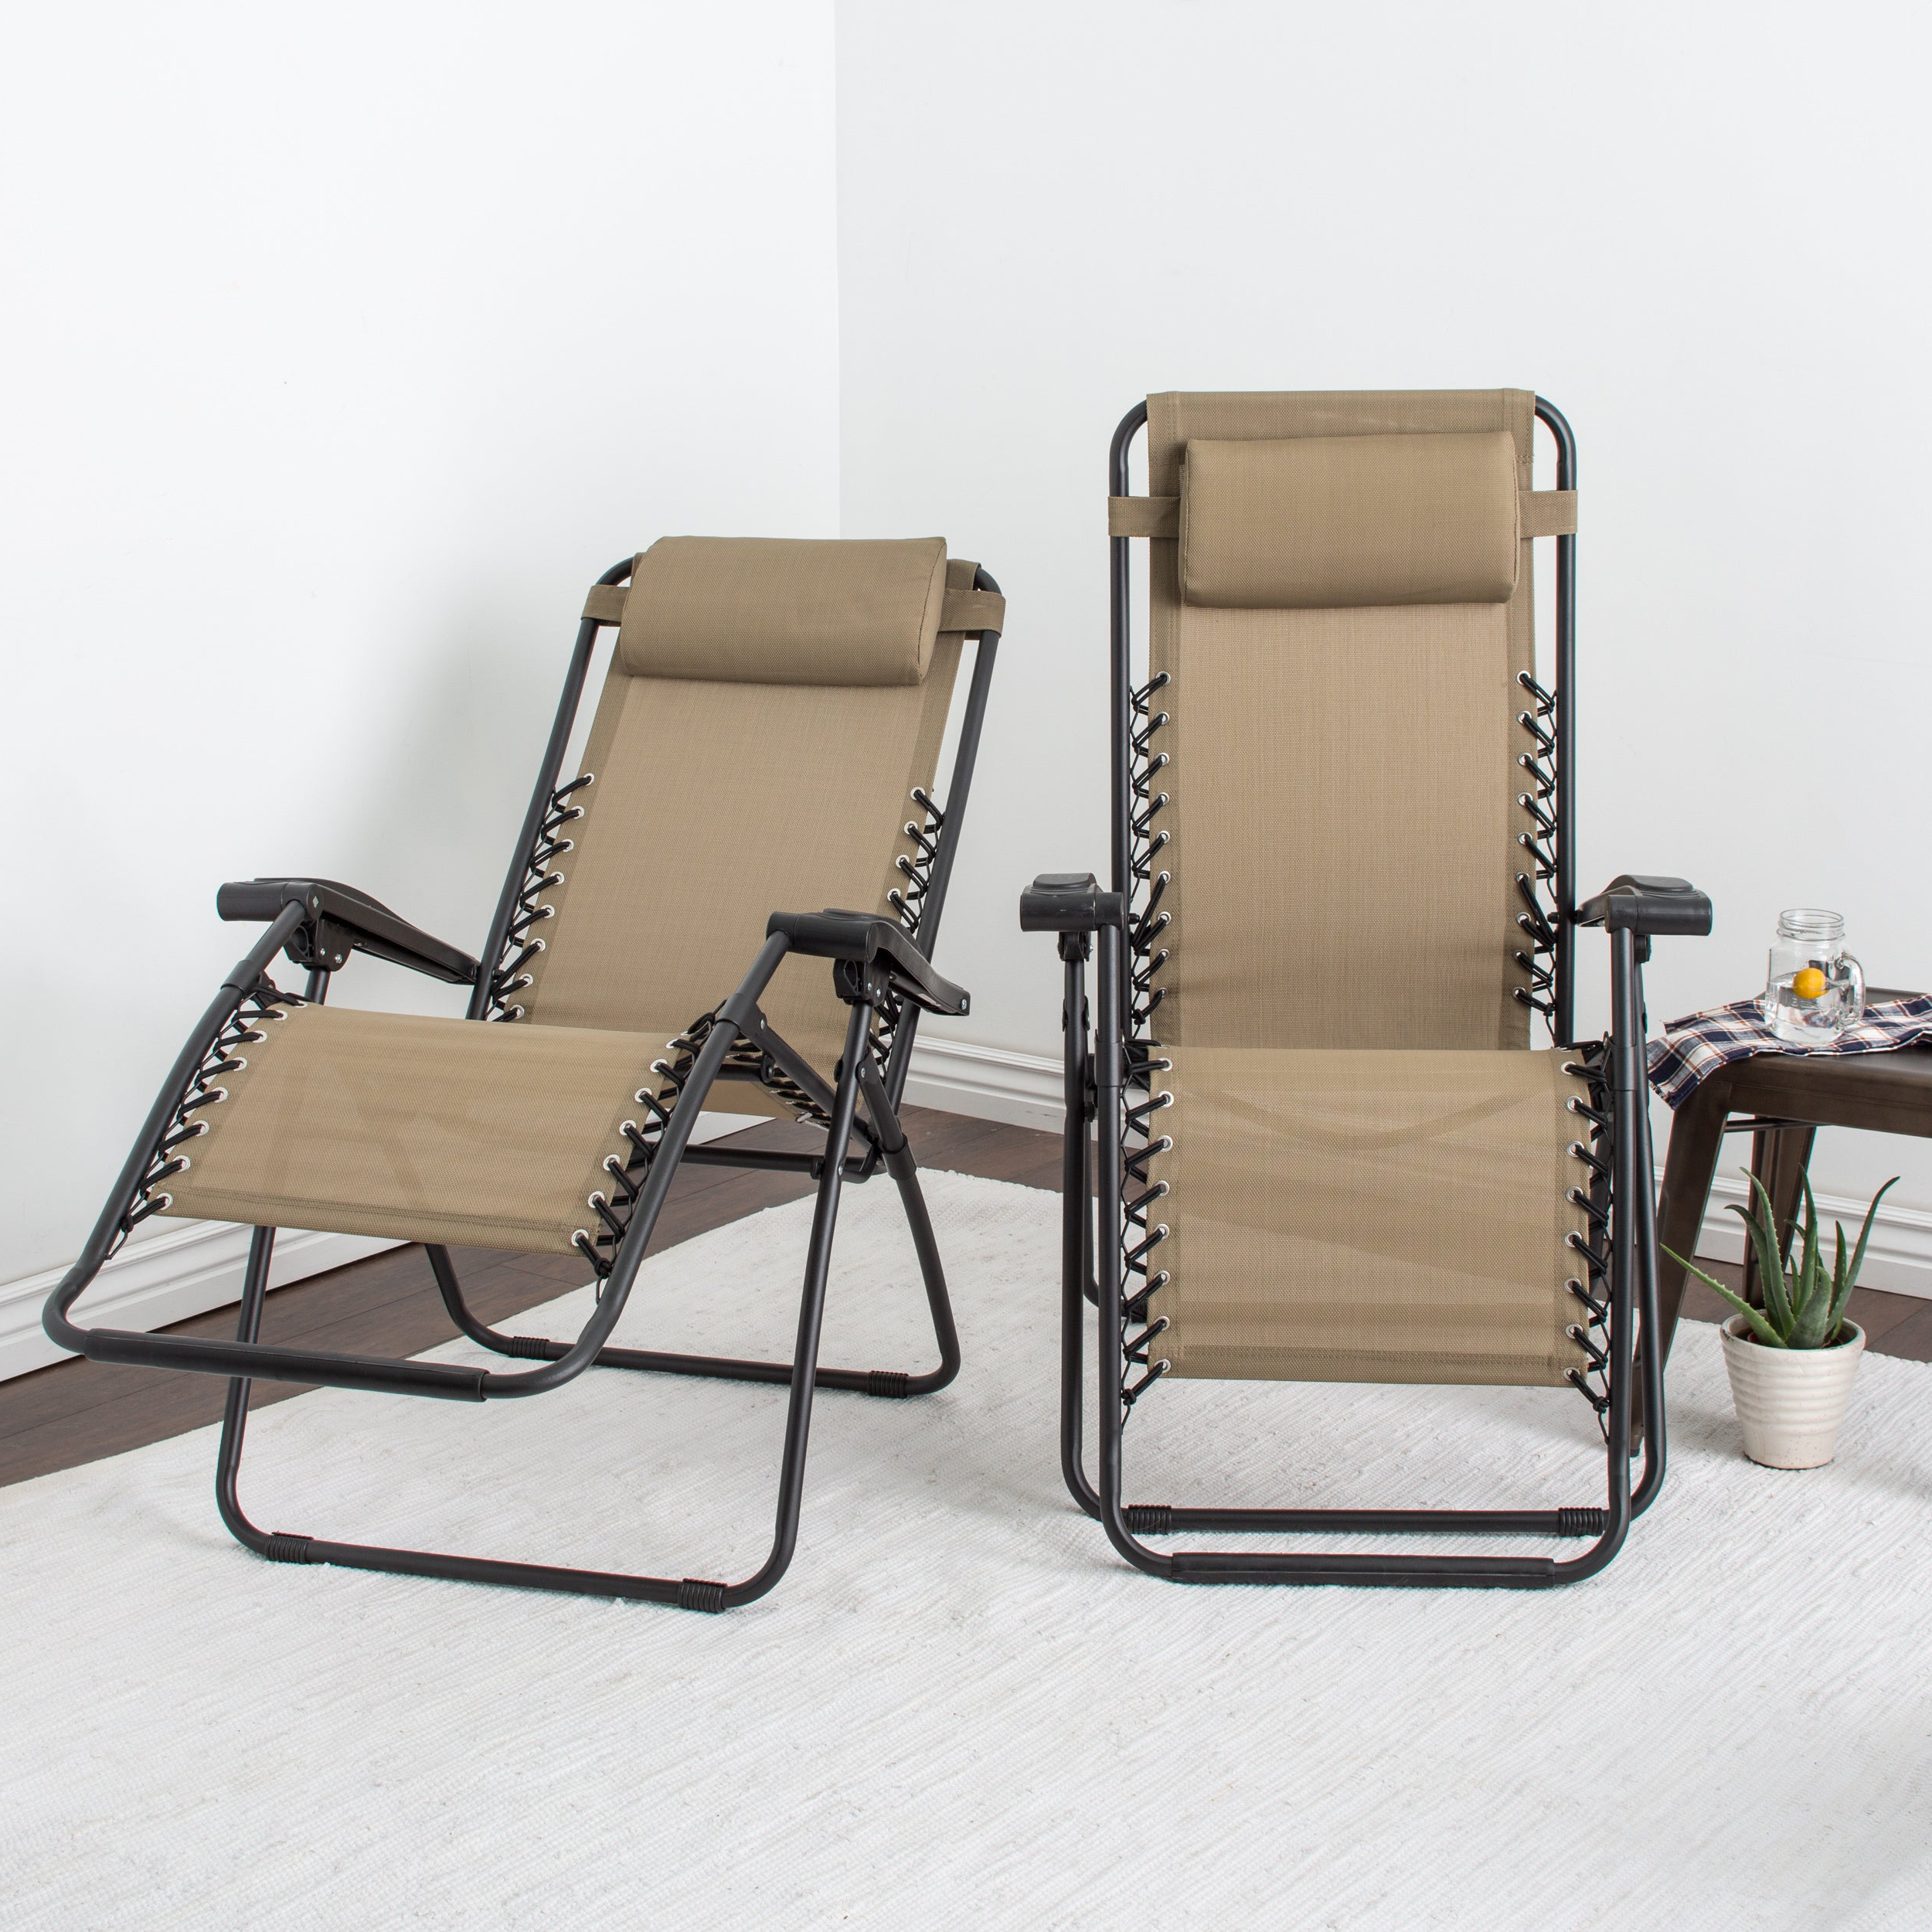 Caravan Sportsbeige Zero Gravity Chairs For Favorite Caravan Sportsbeige Zero Gravity Chairs (set Of 2) (View 6 of 25)